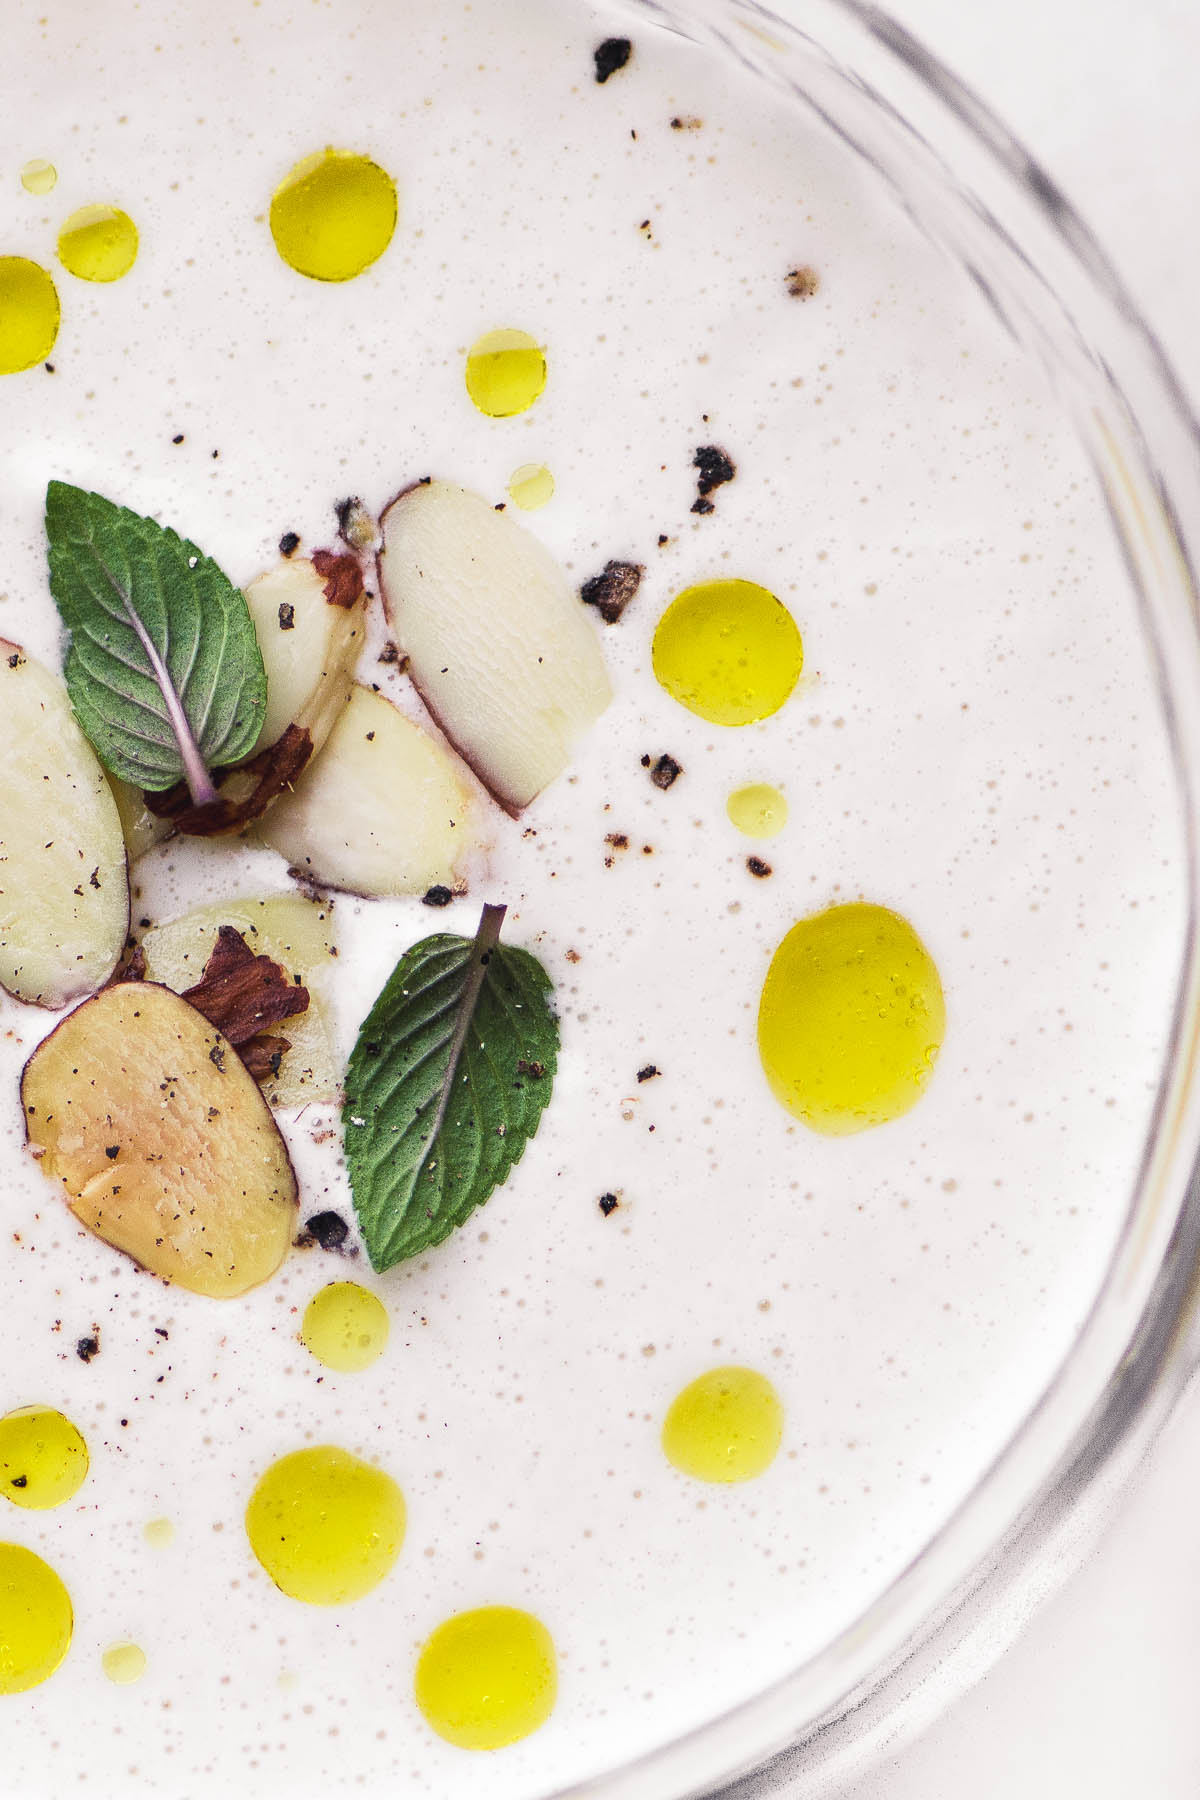 Spanish Chilled Almond Soup